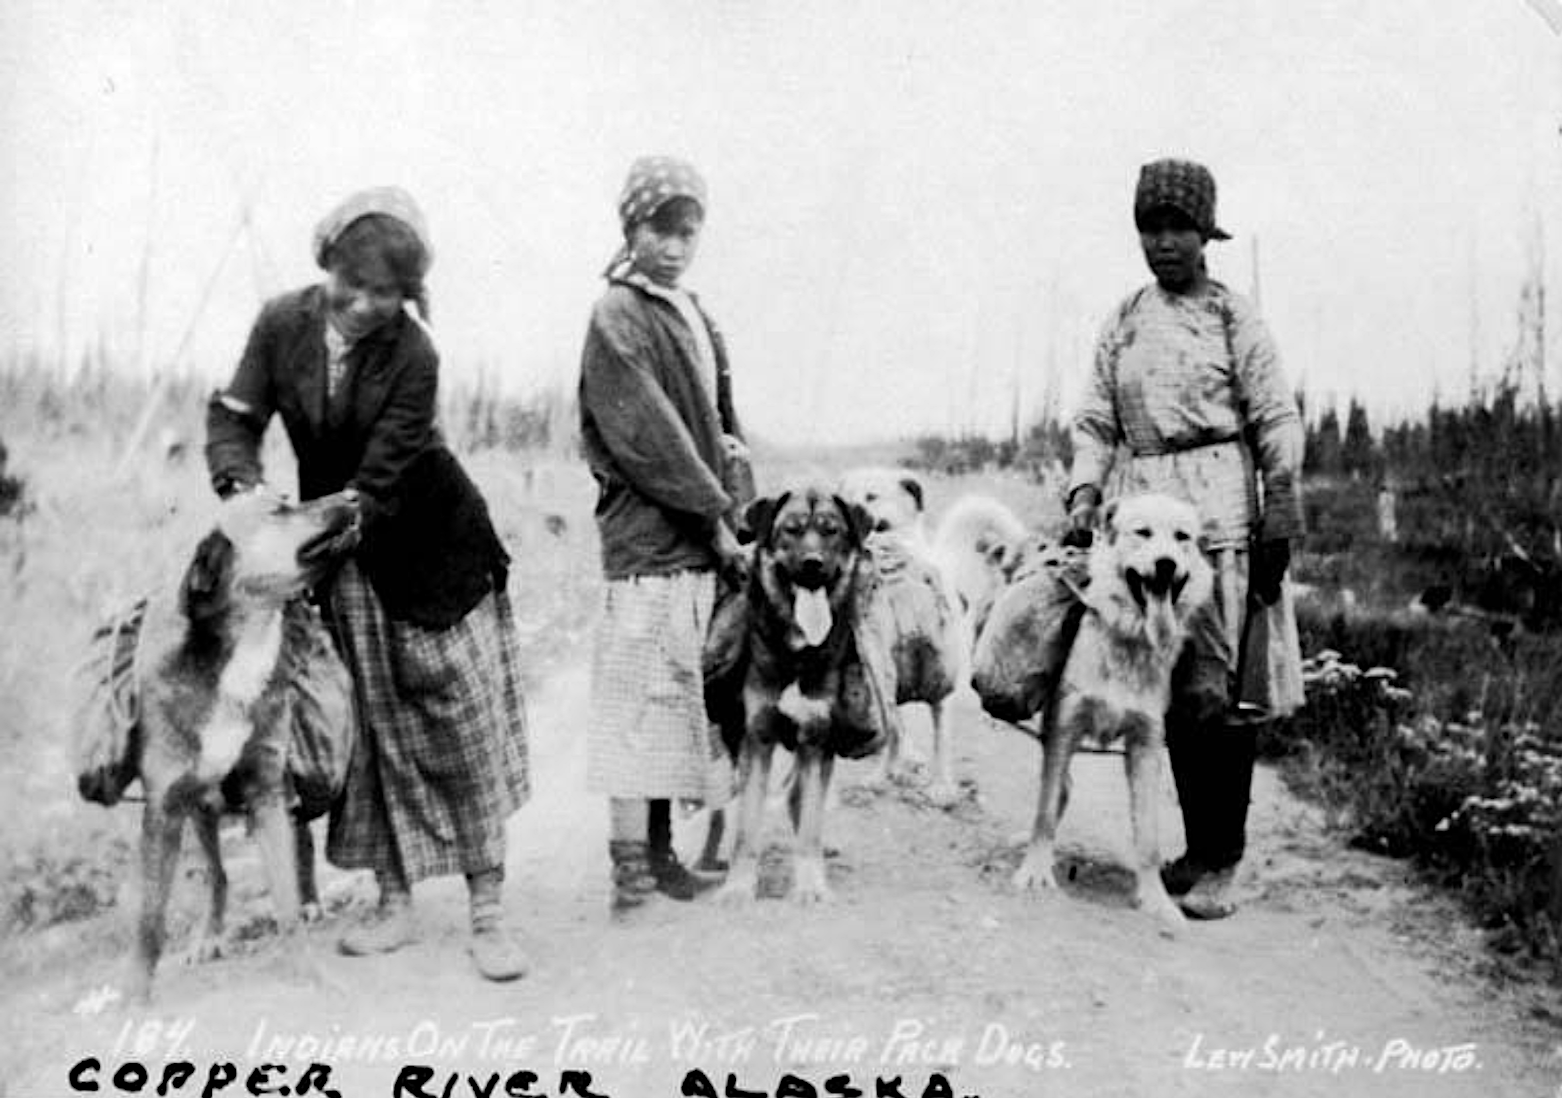 Copper River packdogs